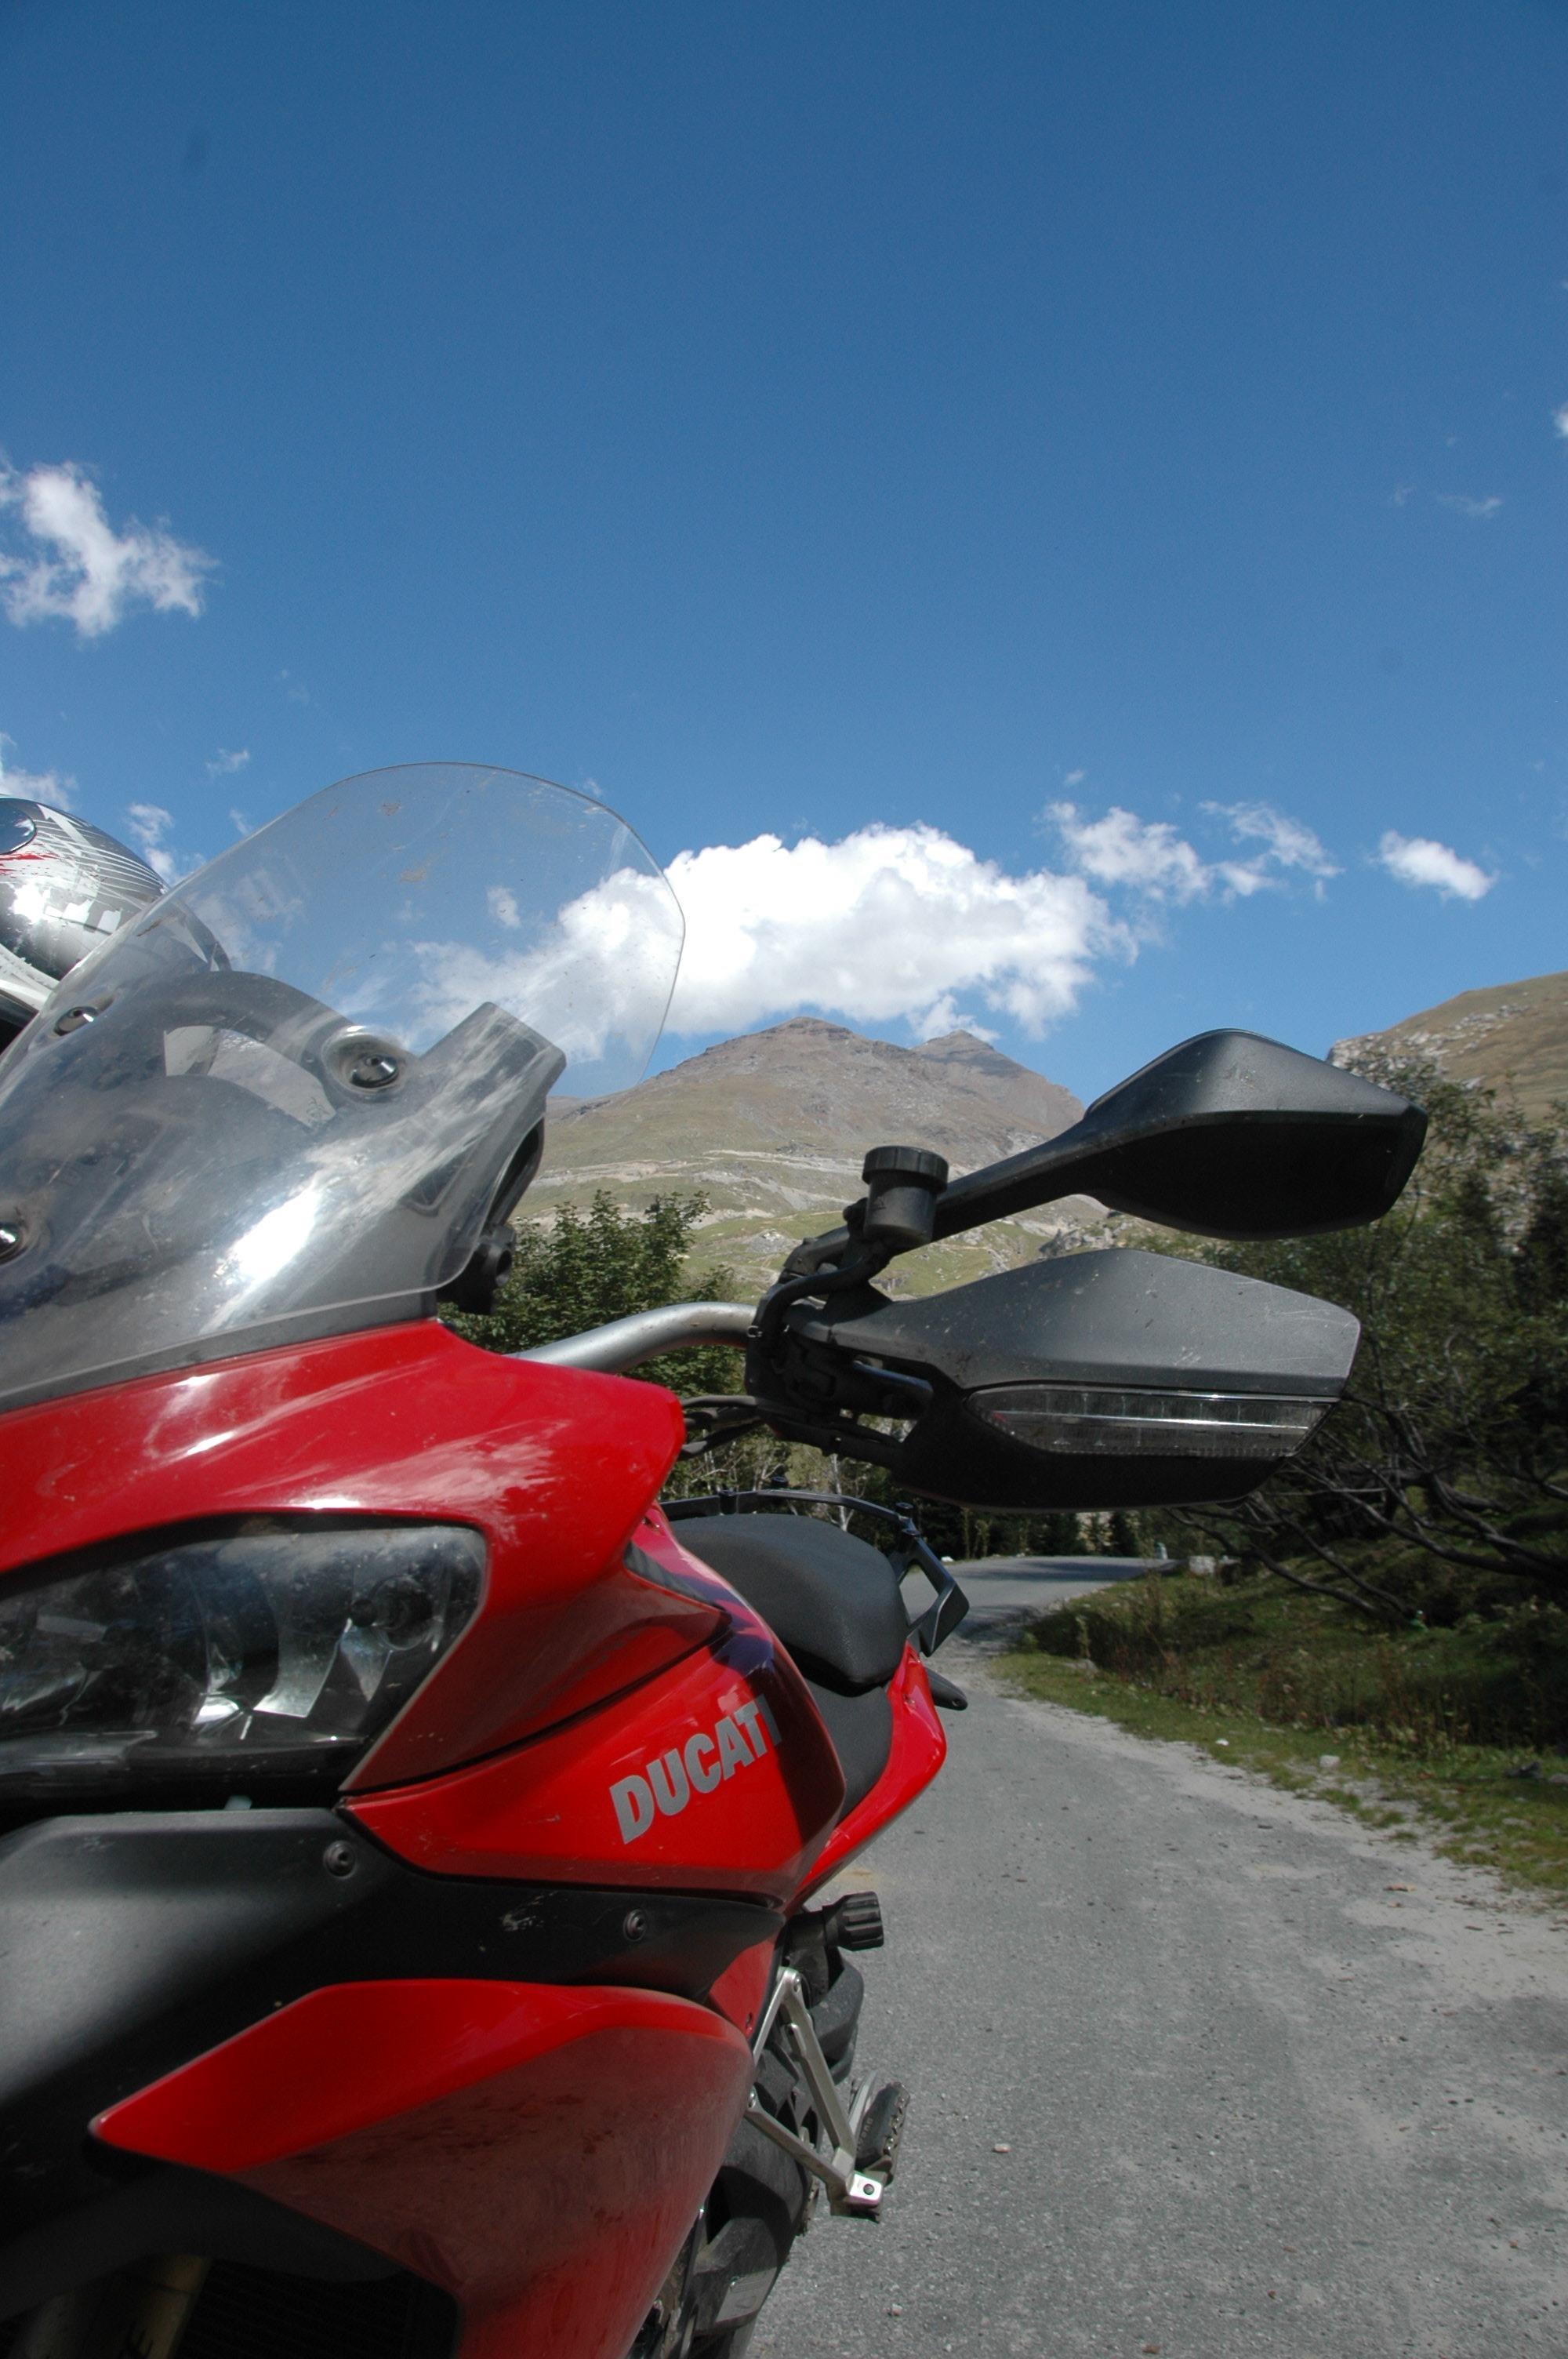 Red Ducati, blue skies, crisp mountain air - the setting for an epic ride.